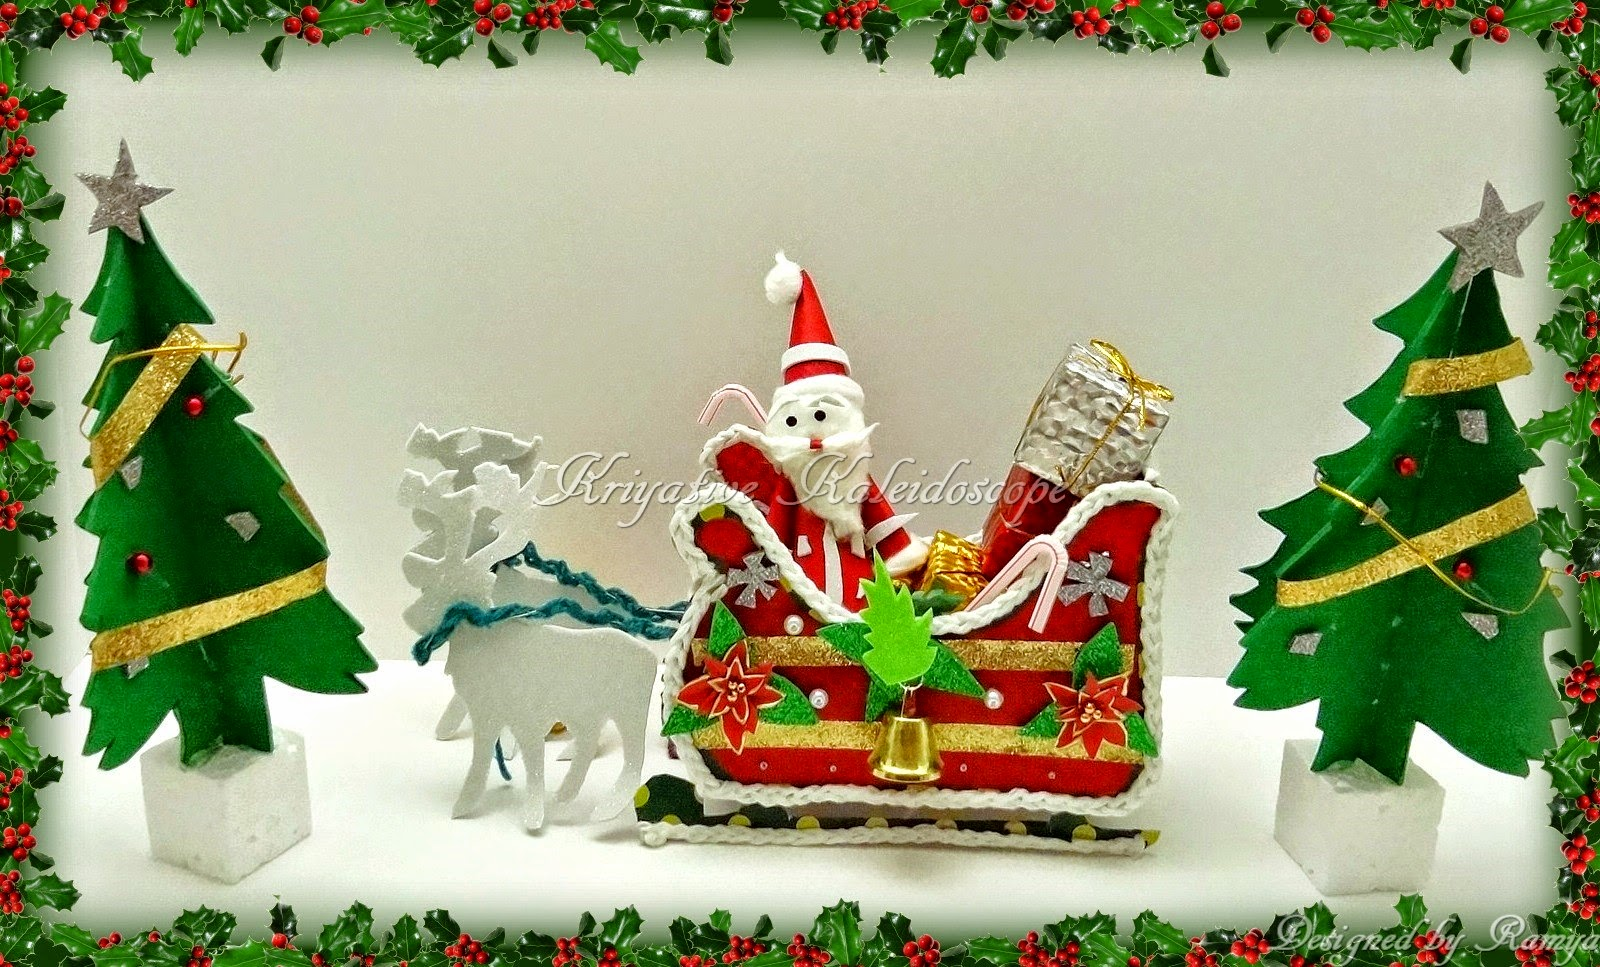 Santa sleigh ornament - When I Saw The Theme Of Many Challenges To Be Christmas I Decided To Try Out Something I Like The Song Jingle Bells In Which Santa Claus Comes Riding On The